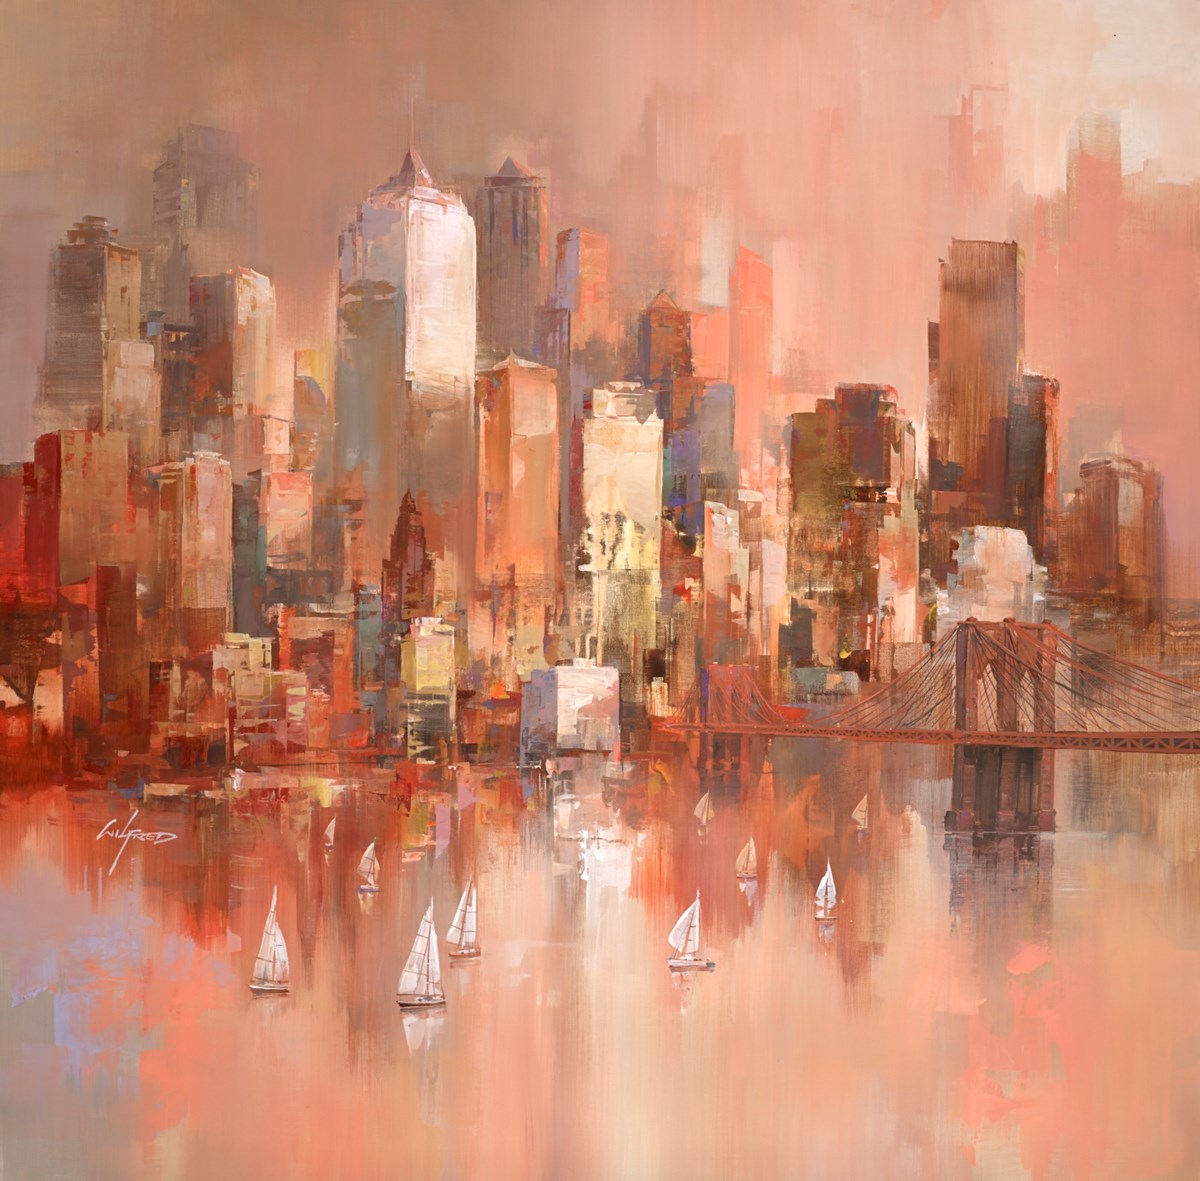 City Sundown VI by wilfred -  sized 38x38 inches. Available from Whitewall Galleries